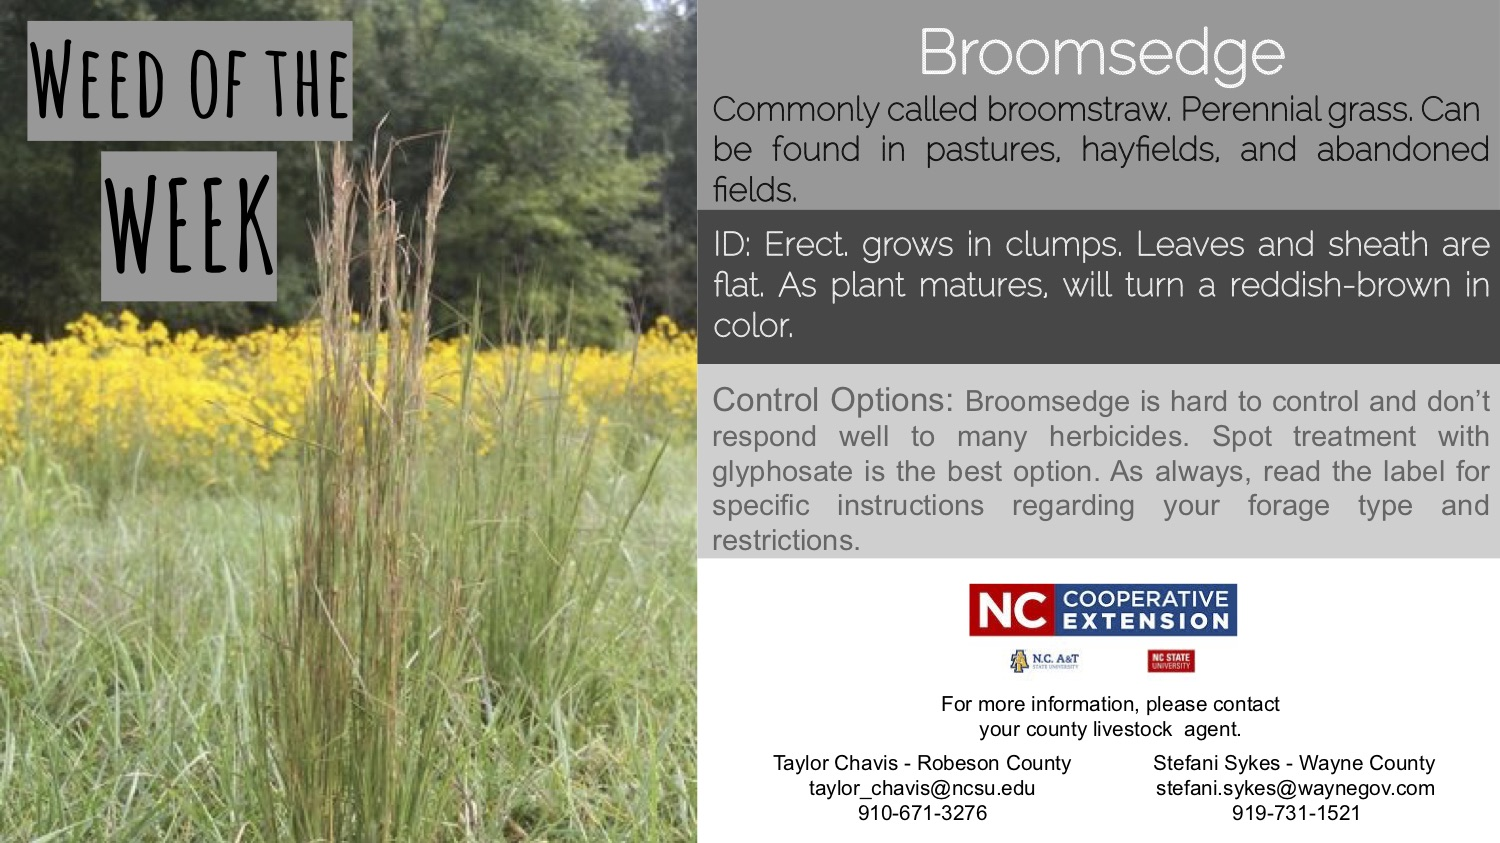 Information on the weed Broomsedge.